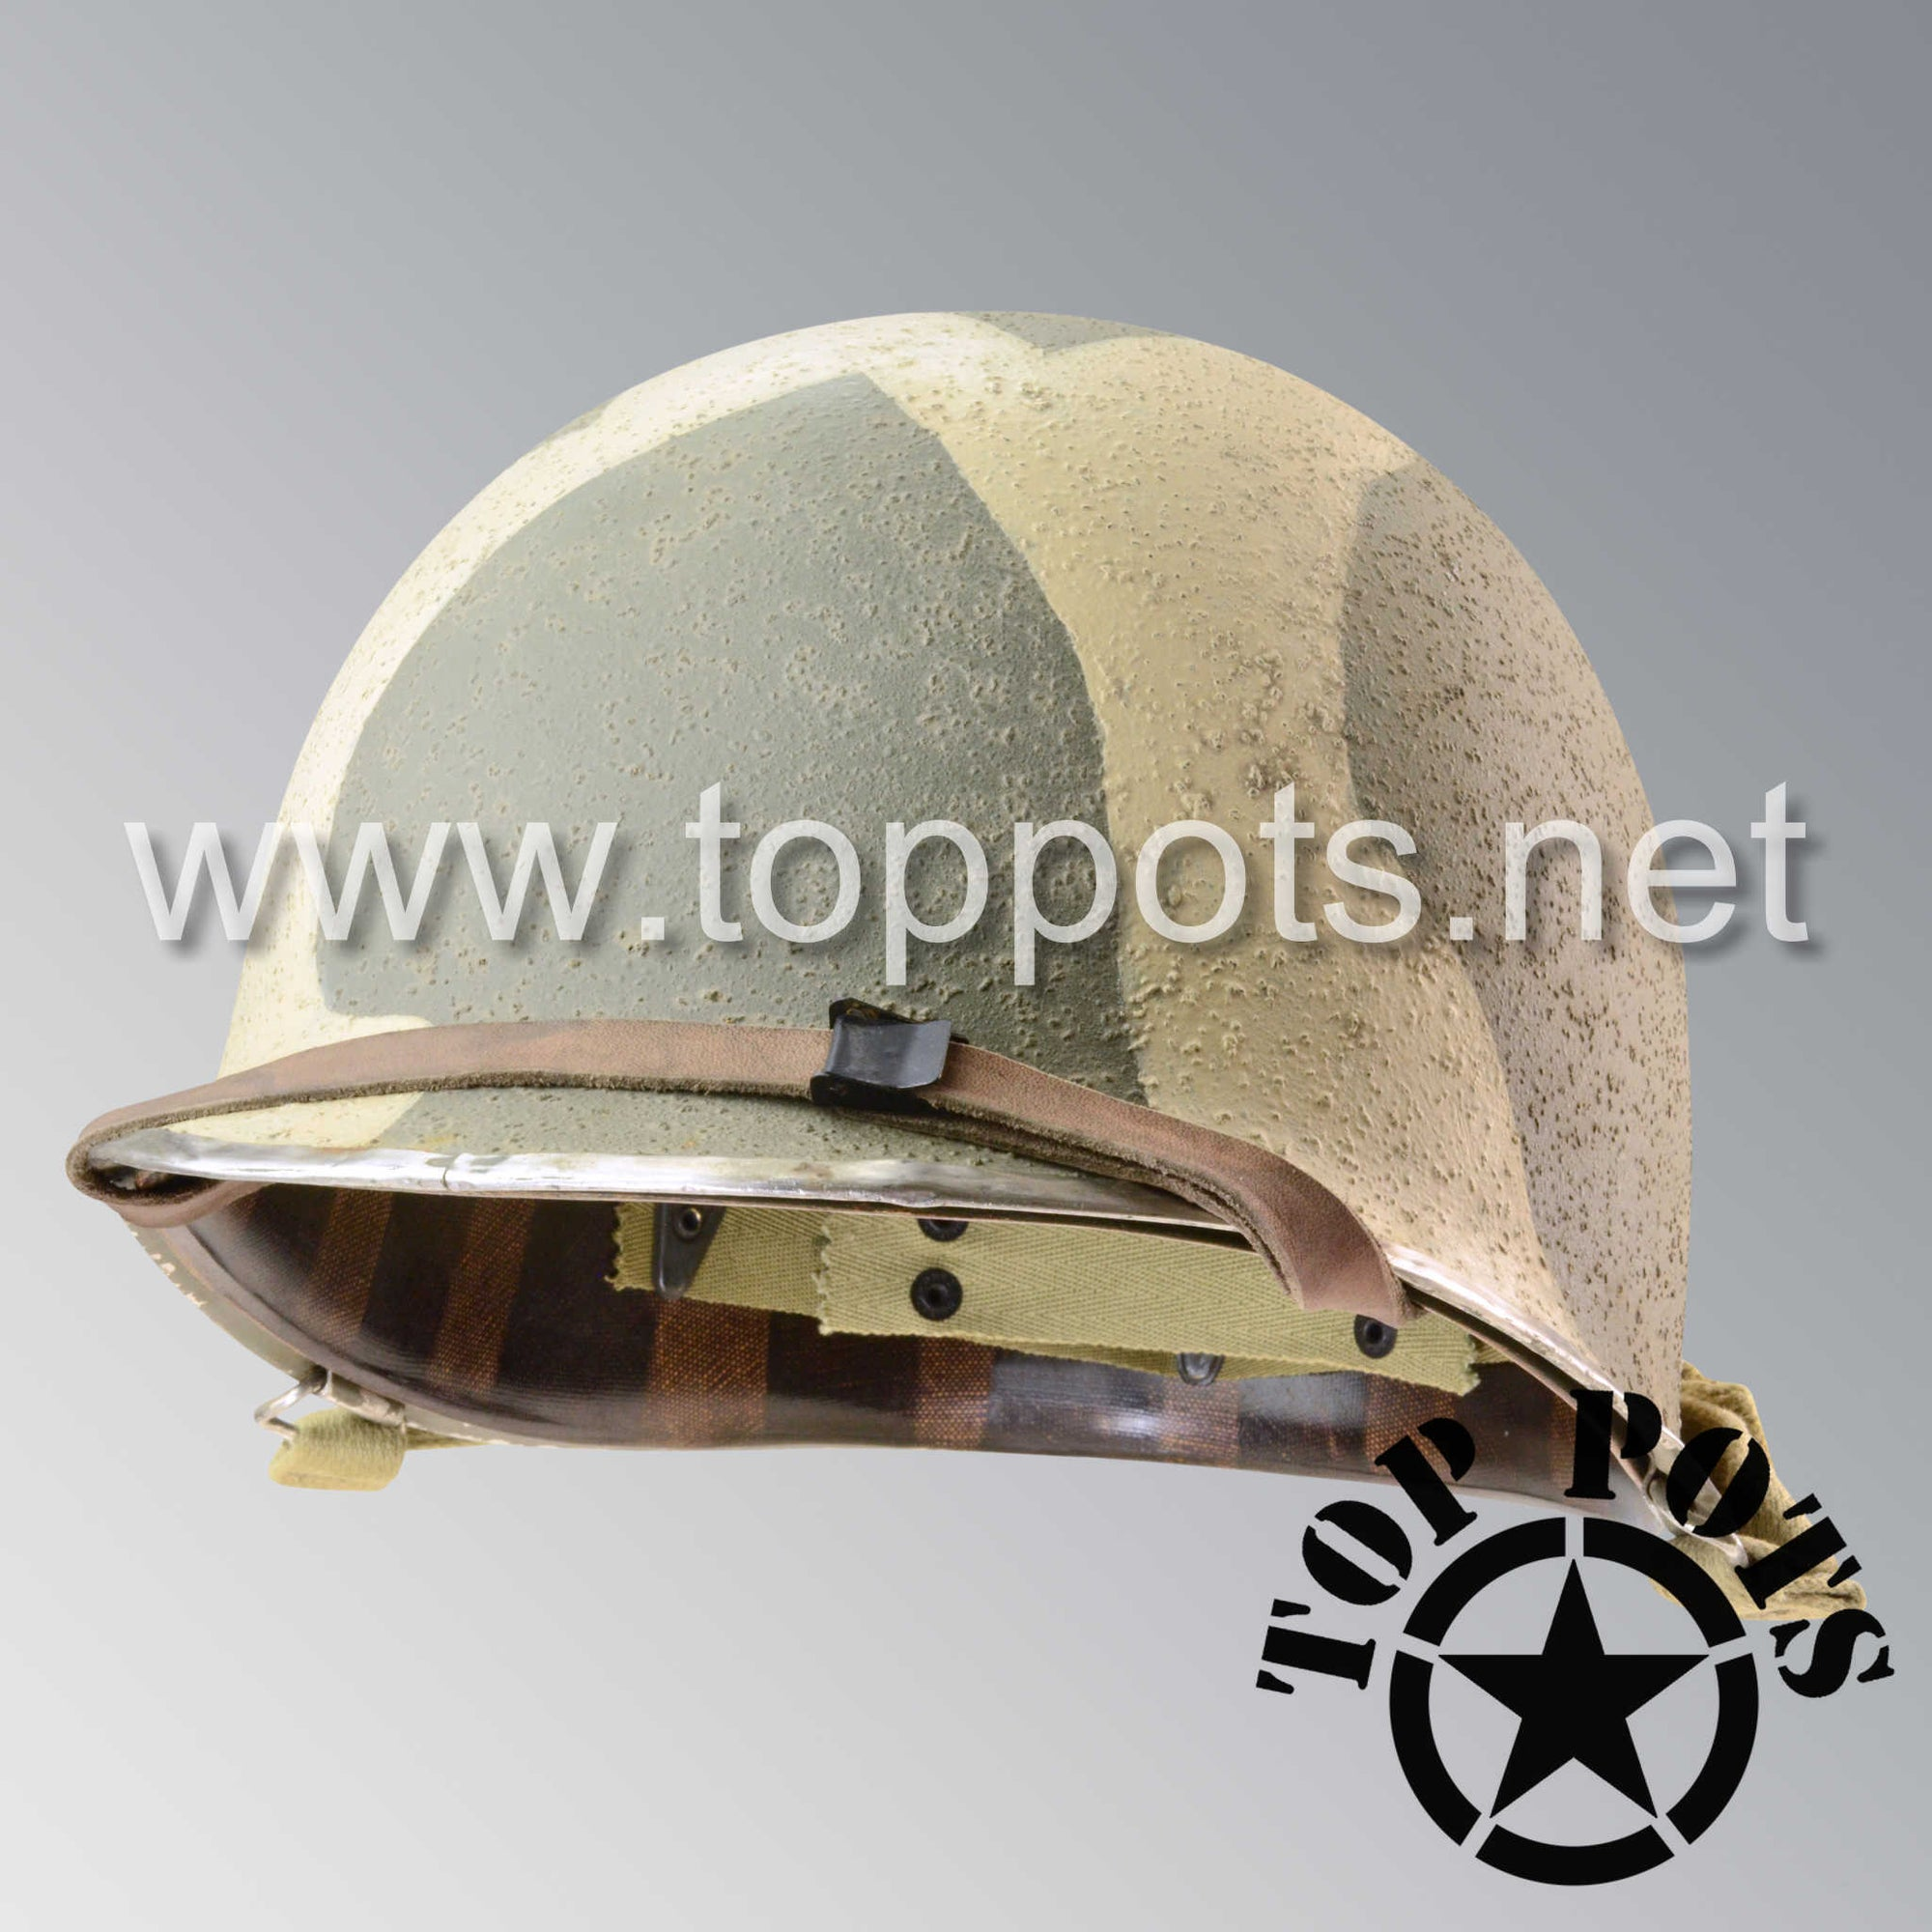 Image 1 of WWII US Army Aged Original M1 Infantry Helmet Swivel Bale Shell and Liner with 7th Infantry Division Camouflage Emblem